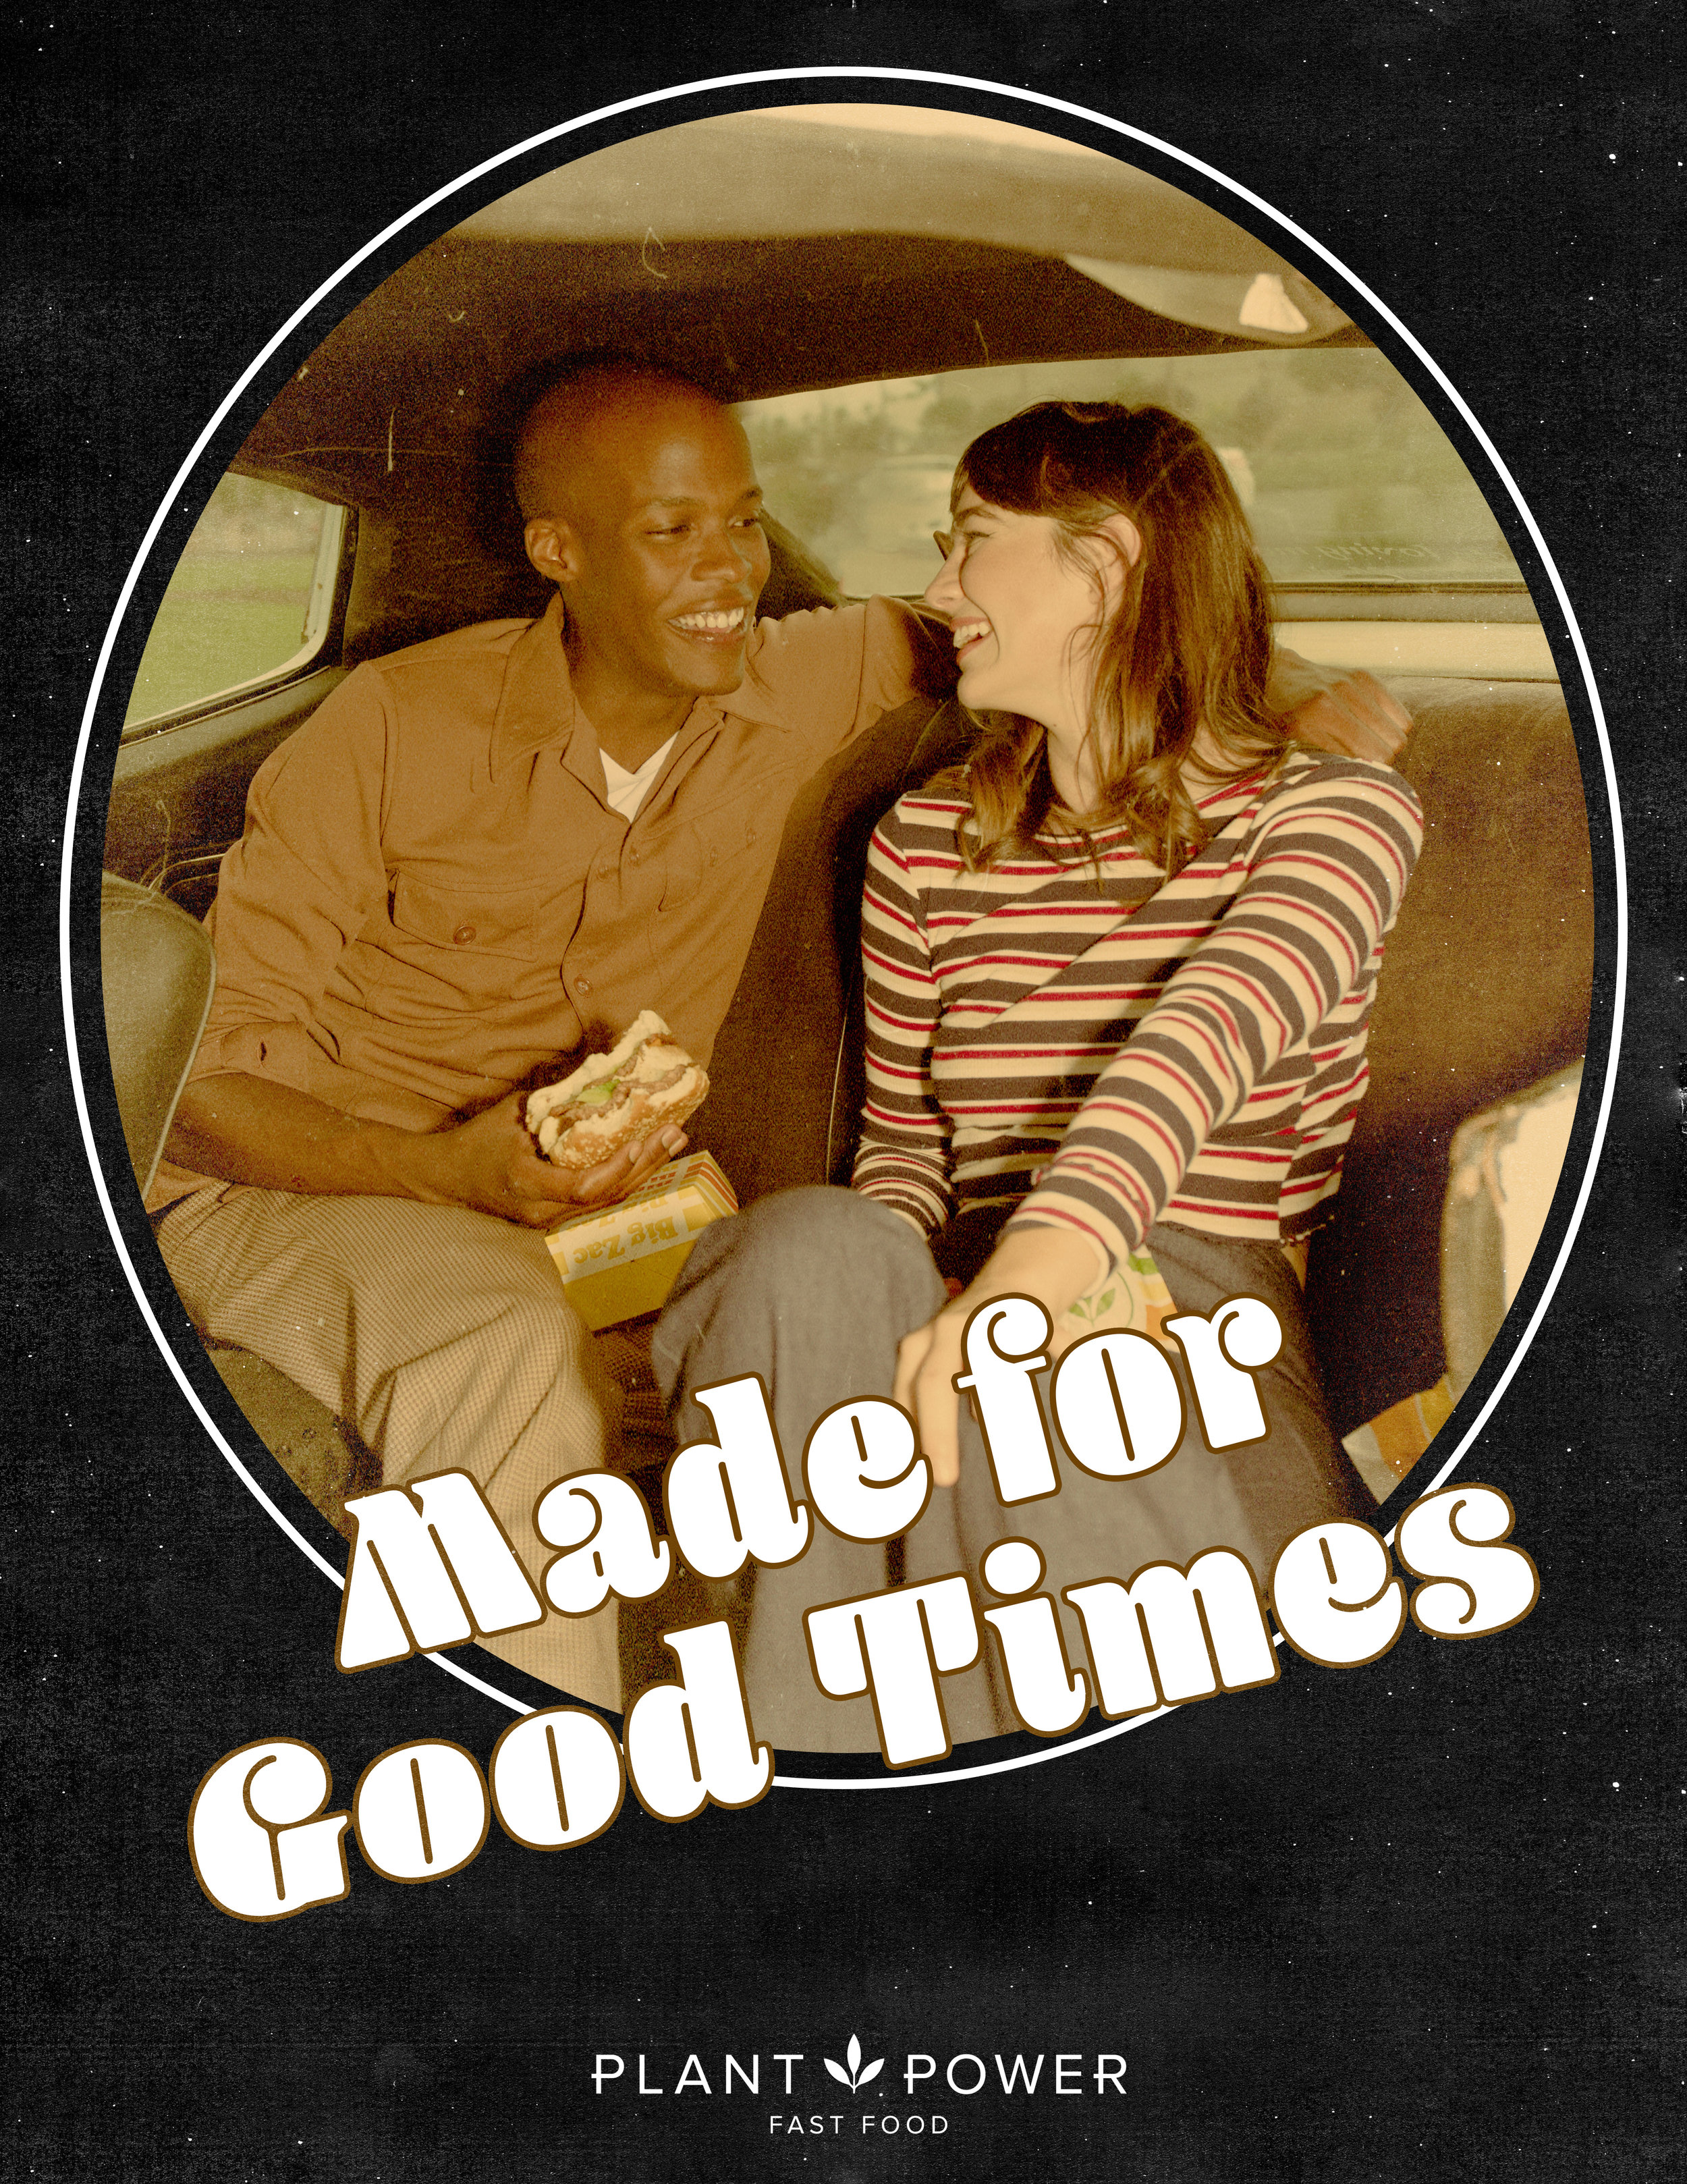 GoodTimes-Black-aug.jpg